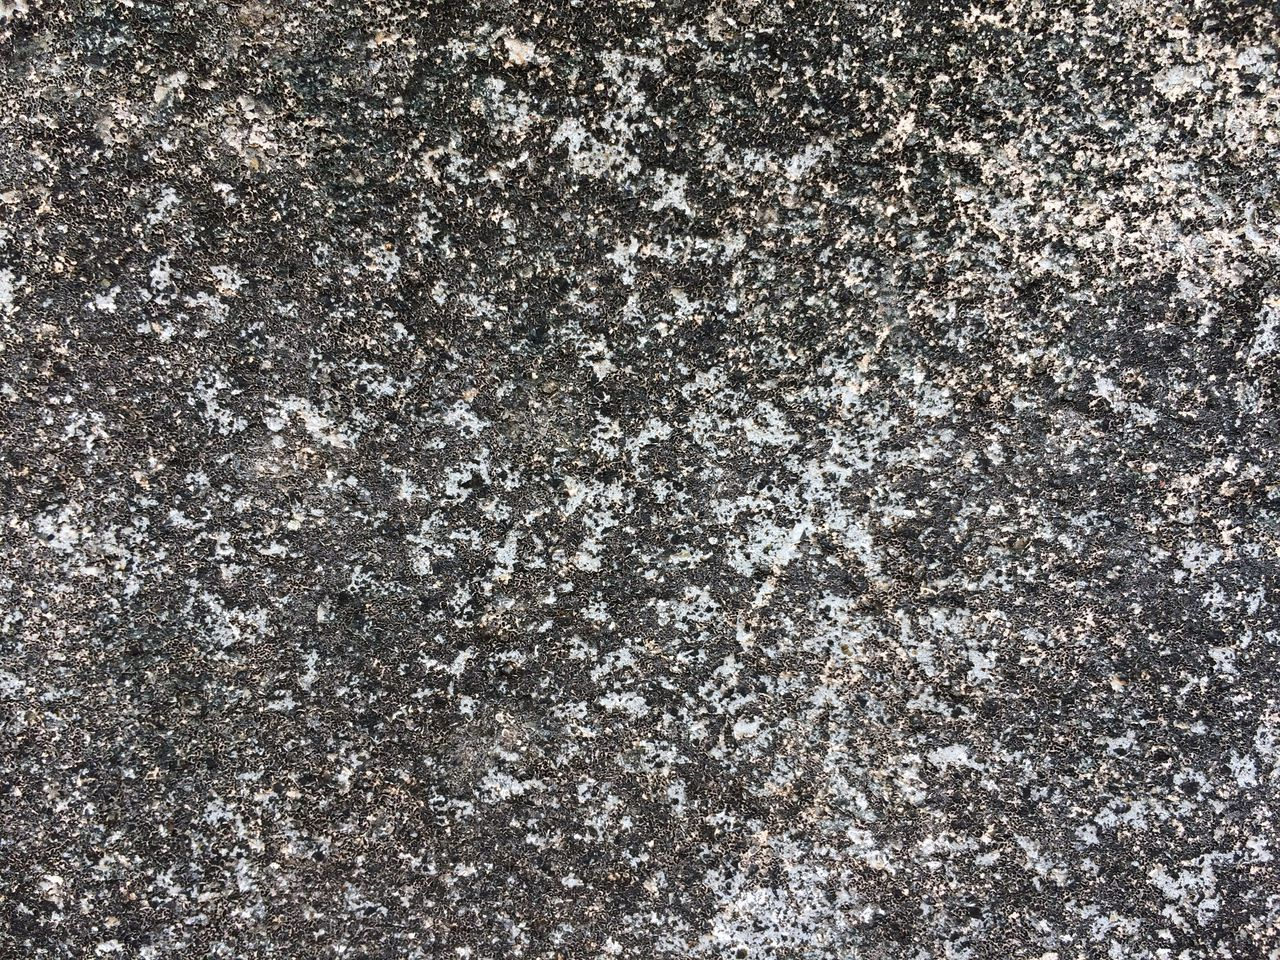 Cement textured Backgrounds Full Frame Textured  Pattern Stone Material Abstract Marble No People Close-up Architecture Nature Day Outdoors Cement Abstract Background Pattern Pattern Texture Texture Textured  Background Abstract